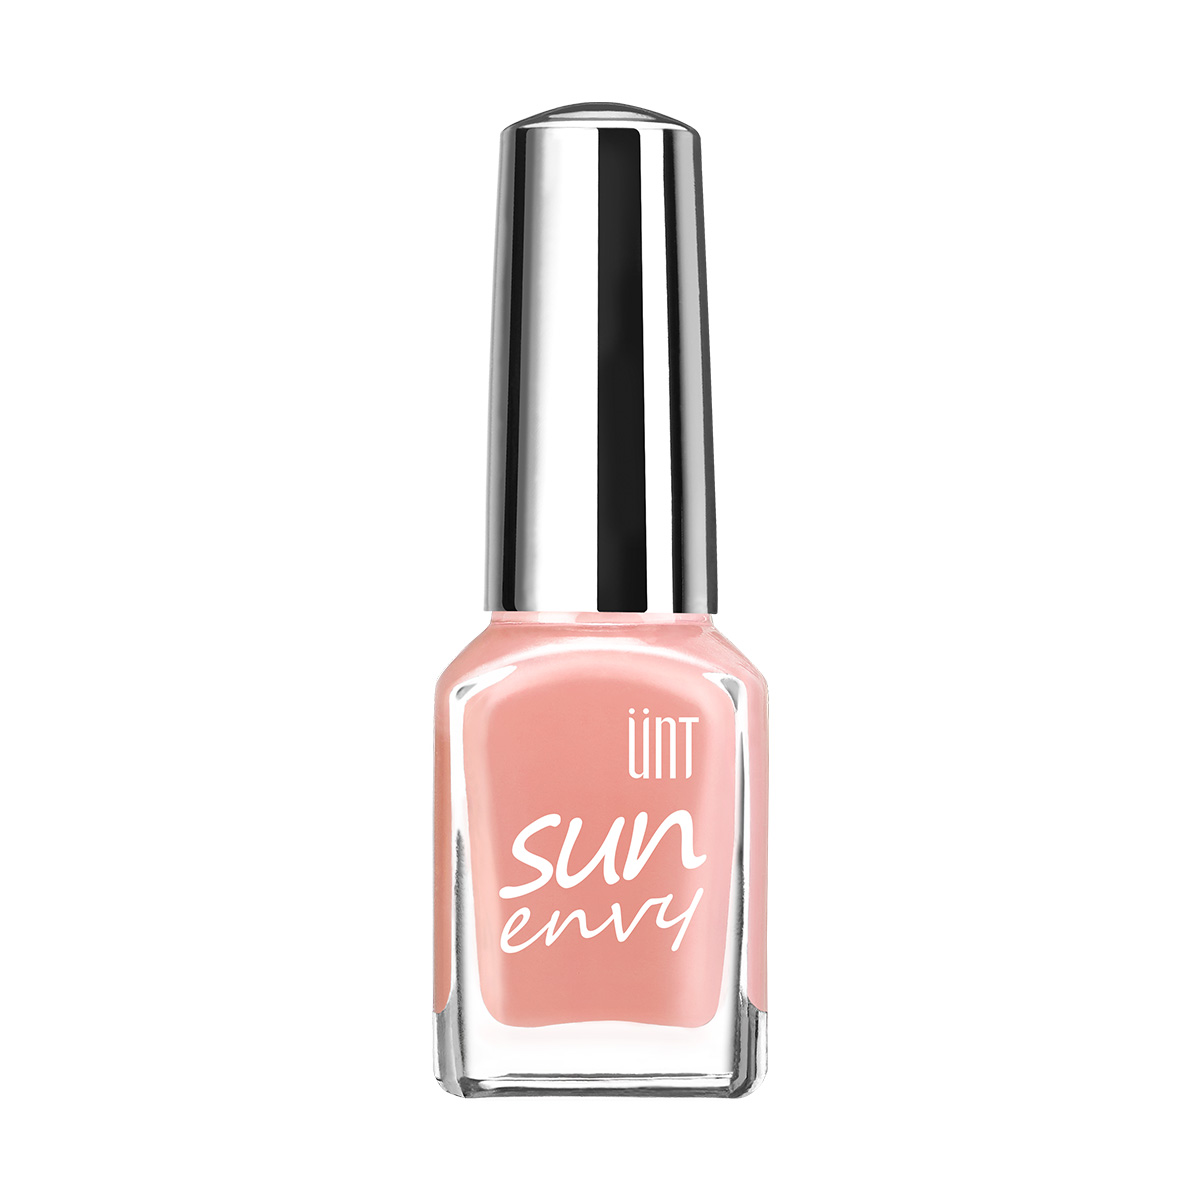 SUN ENVY GEL EFFECT NAIL POLISH – SET IT FREE